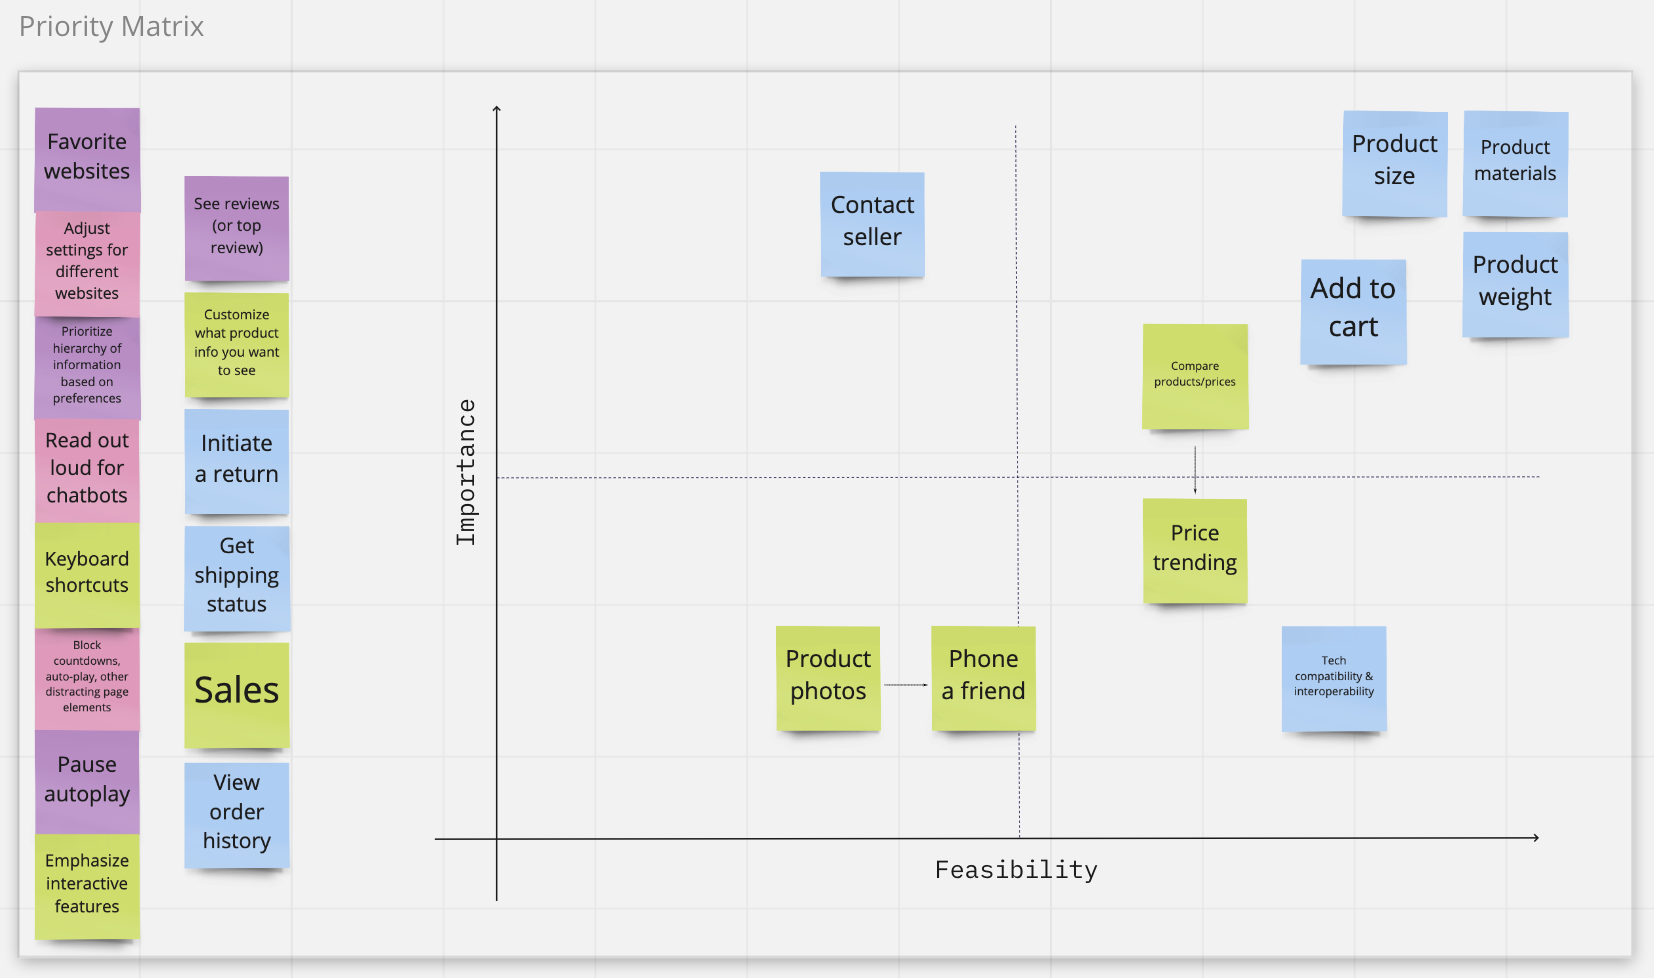 A priority matrix comparing feasibility versus importance of potential plug-in features.